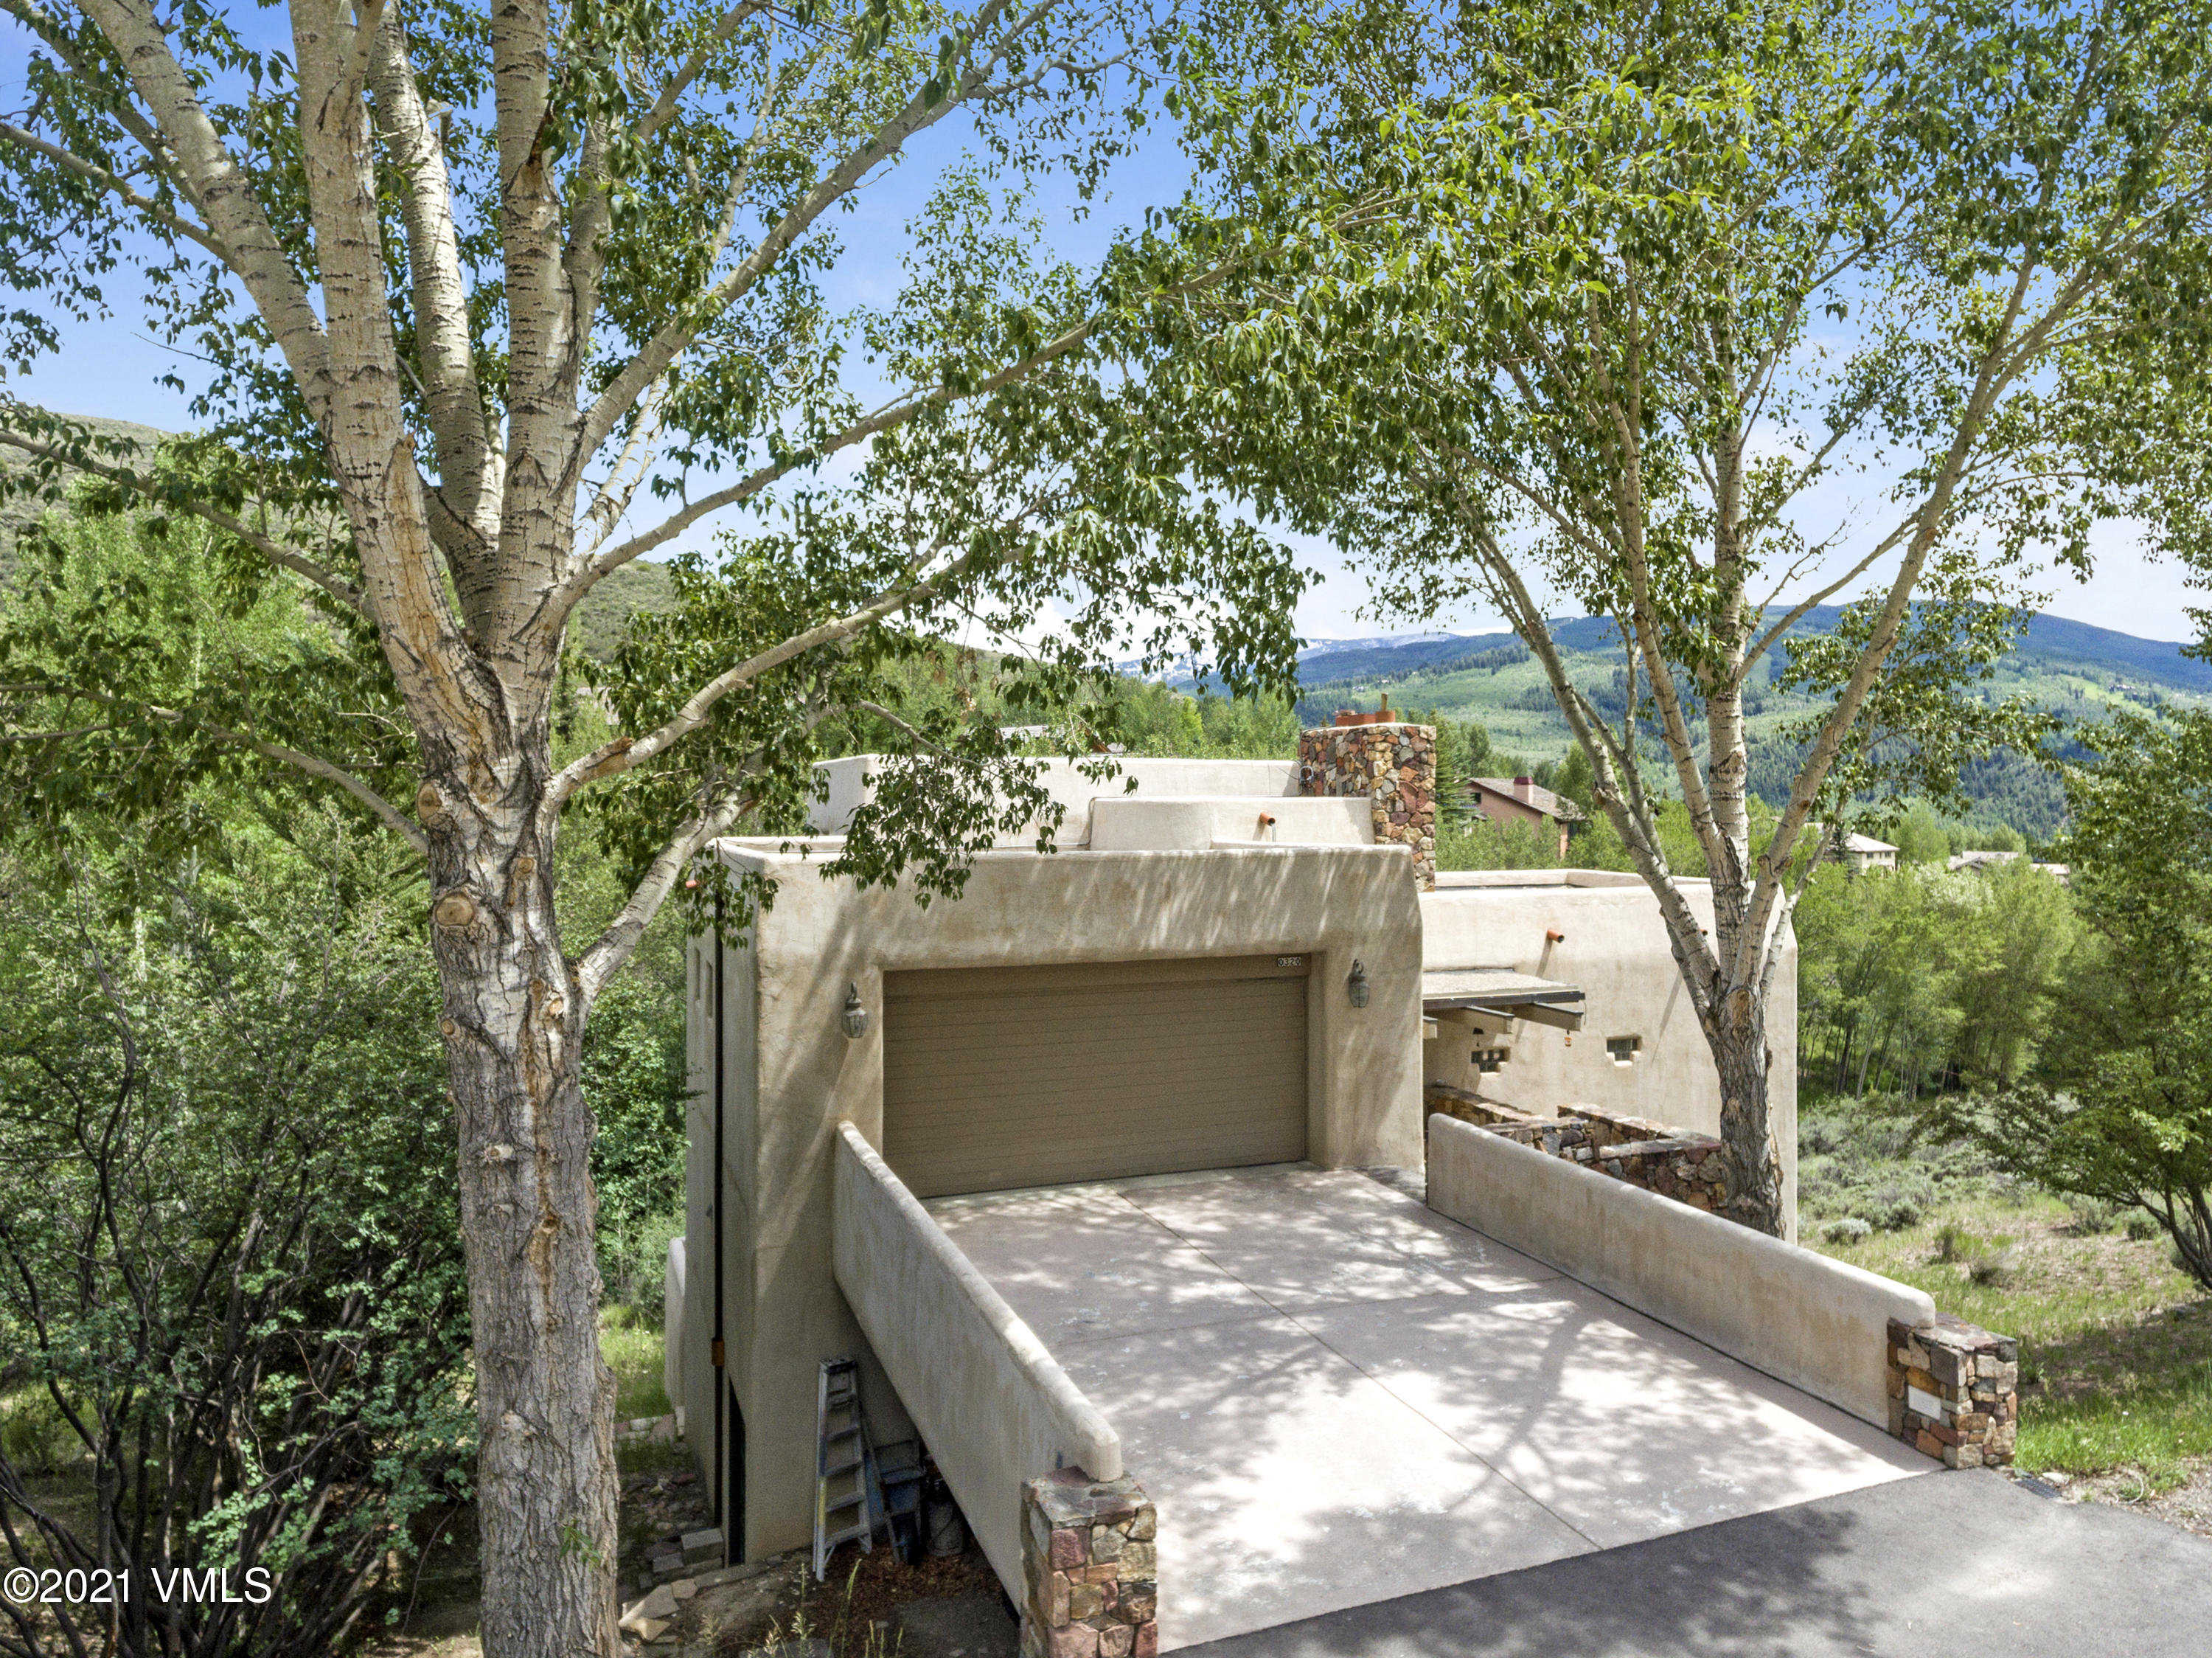 First time ever on the market. Some of the best views available of Beaver Creek and Arrowhead ski runs, pond and Singletree golf course.  Property is actually two lots and includes a Tesla power outlet and a Villa Montane/Beaver Creek parking space in the price.  The home is a creative masterpiece of unique spaces through out.  There are 3 outdoor decks and a separate entrance for a mother-in-law area on the lower level. The lower gathering room includes a modern infrared sauna unit and two bedrooms, one with a Murphy wall bed and the bath includes a deep stainless plunge/soaking tub.     Also included firepit / seating area down by June Creek that runs through the property.  Property was built by owner of a stone company and the lovely stone work shows up through out the home.